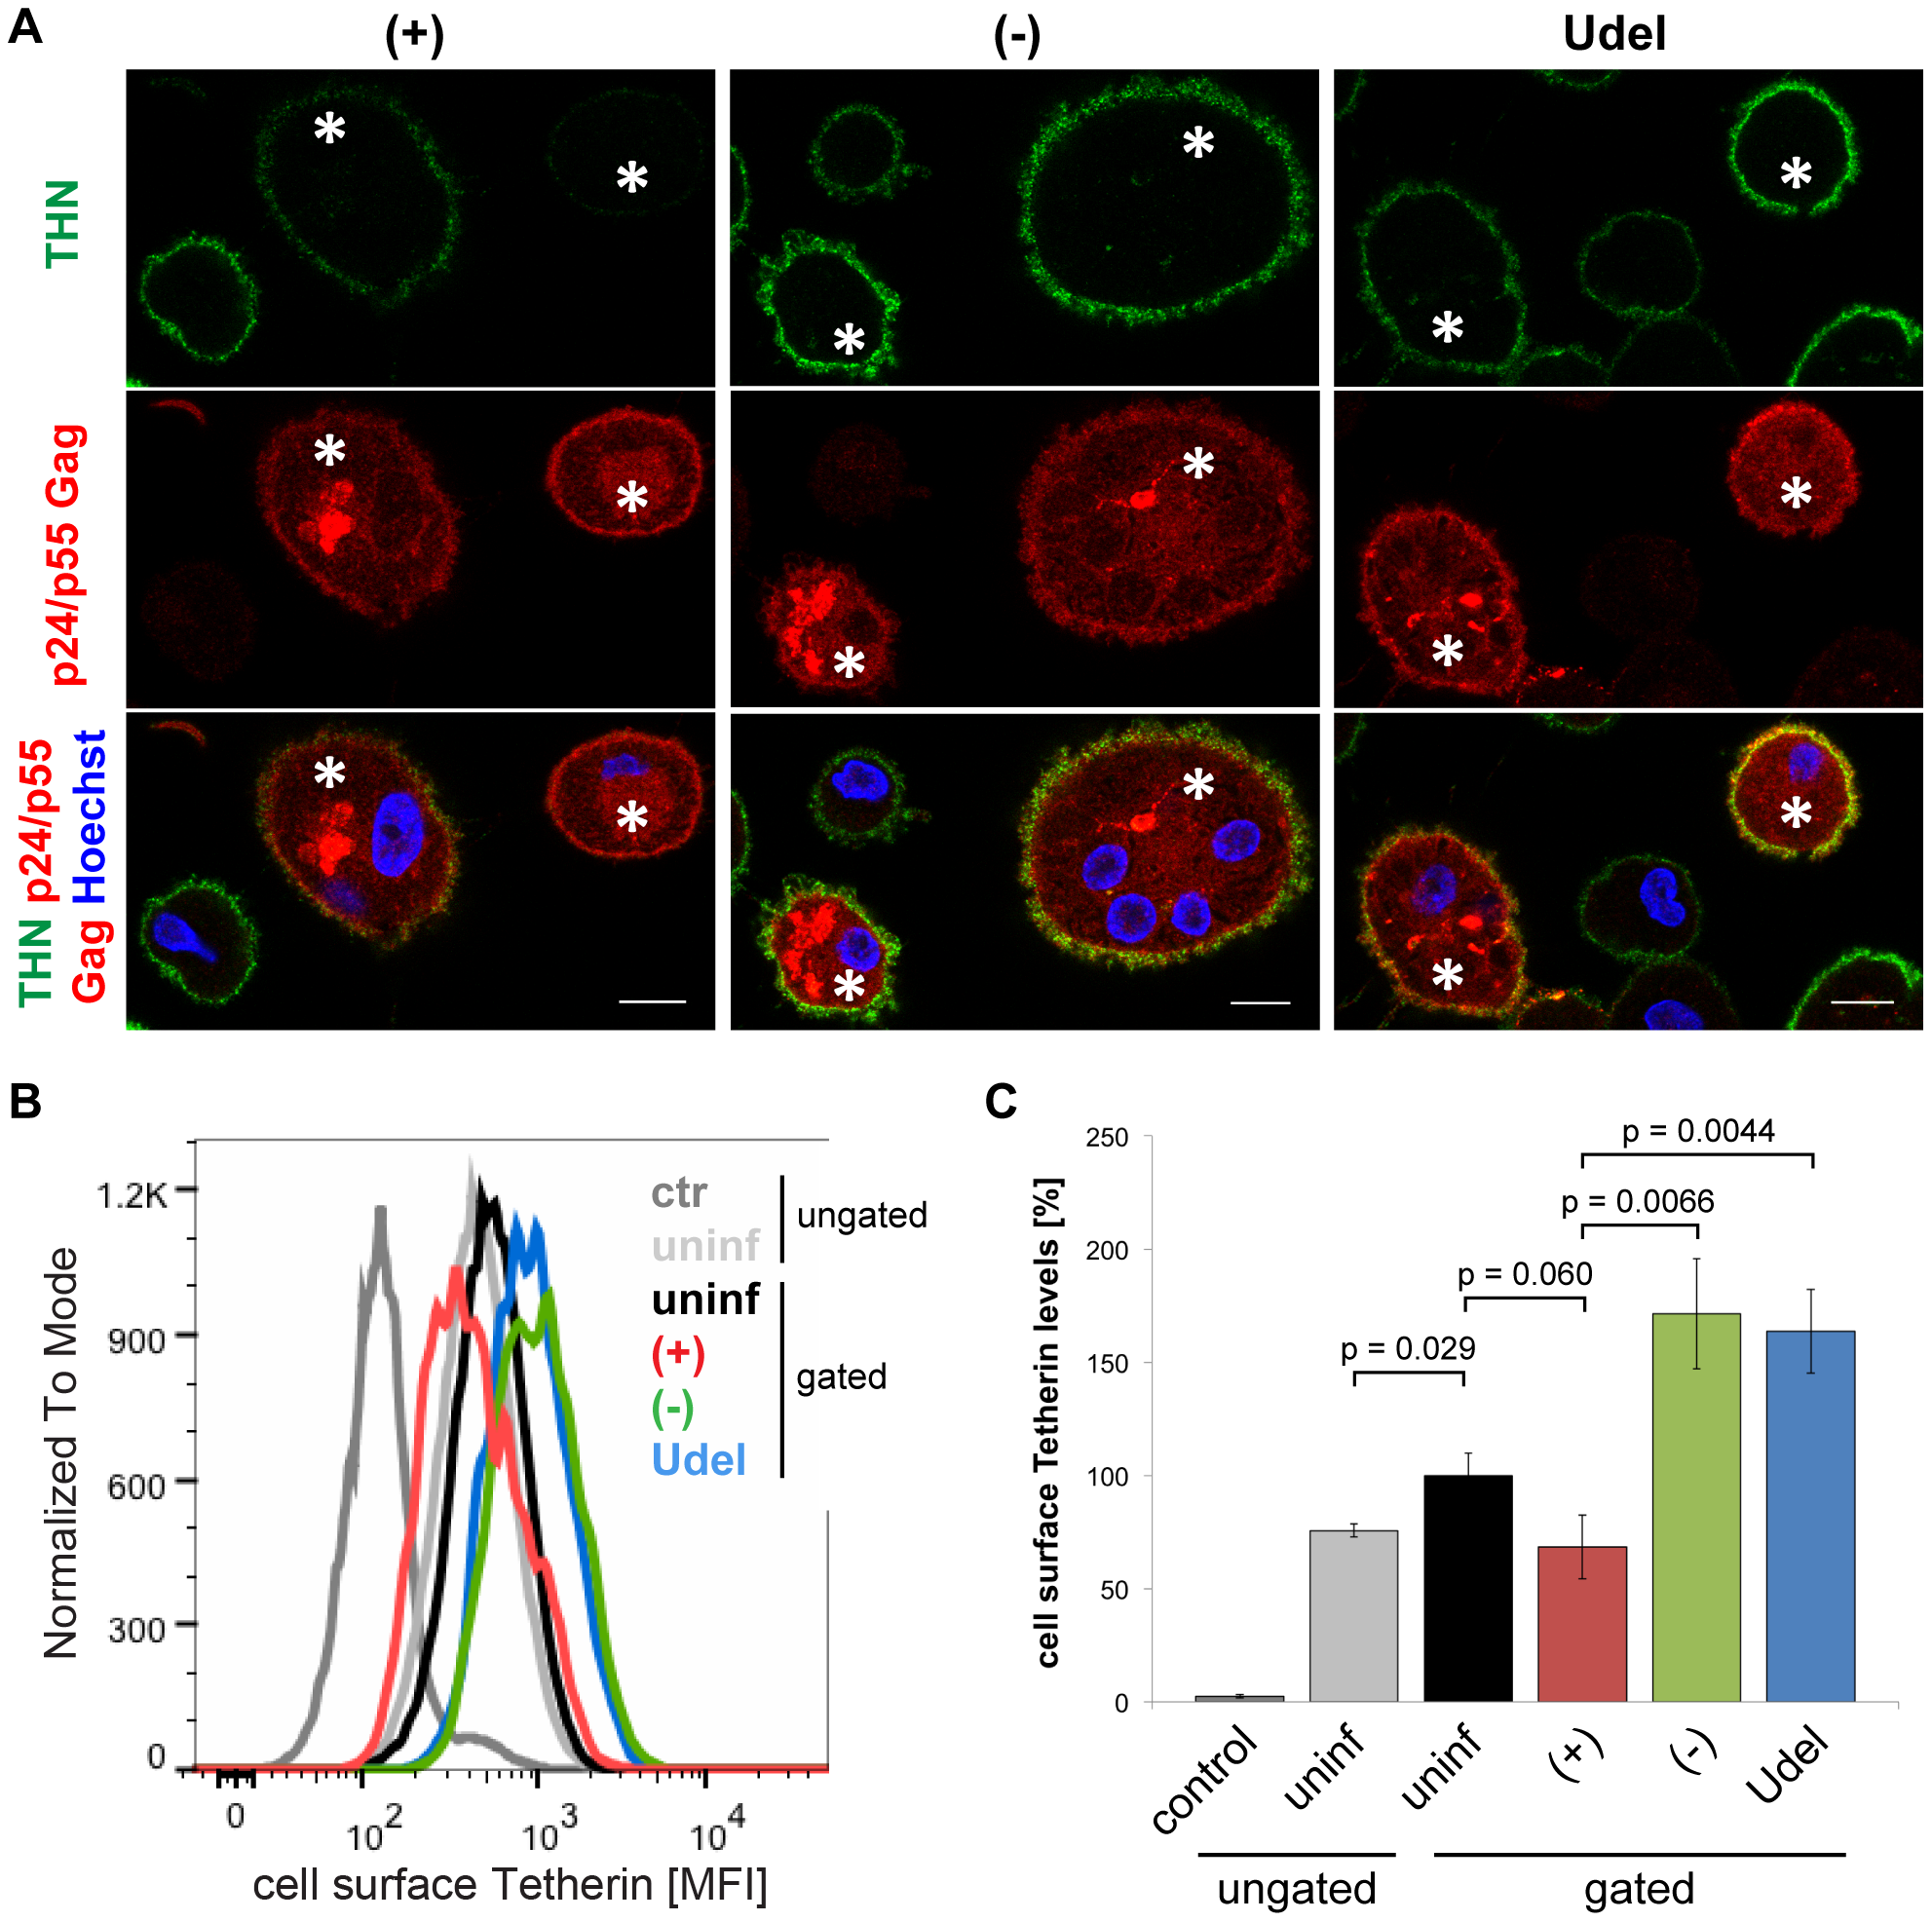 Vpu antagonises cell surface Tetherin in MDMs.